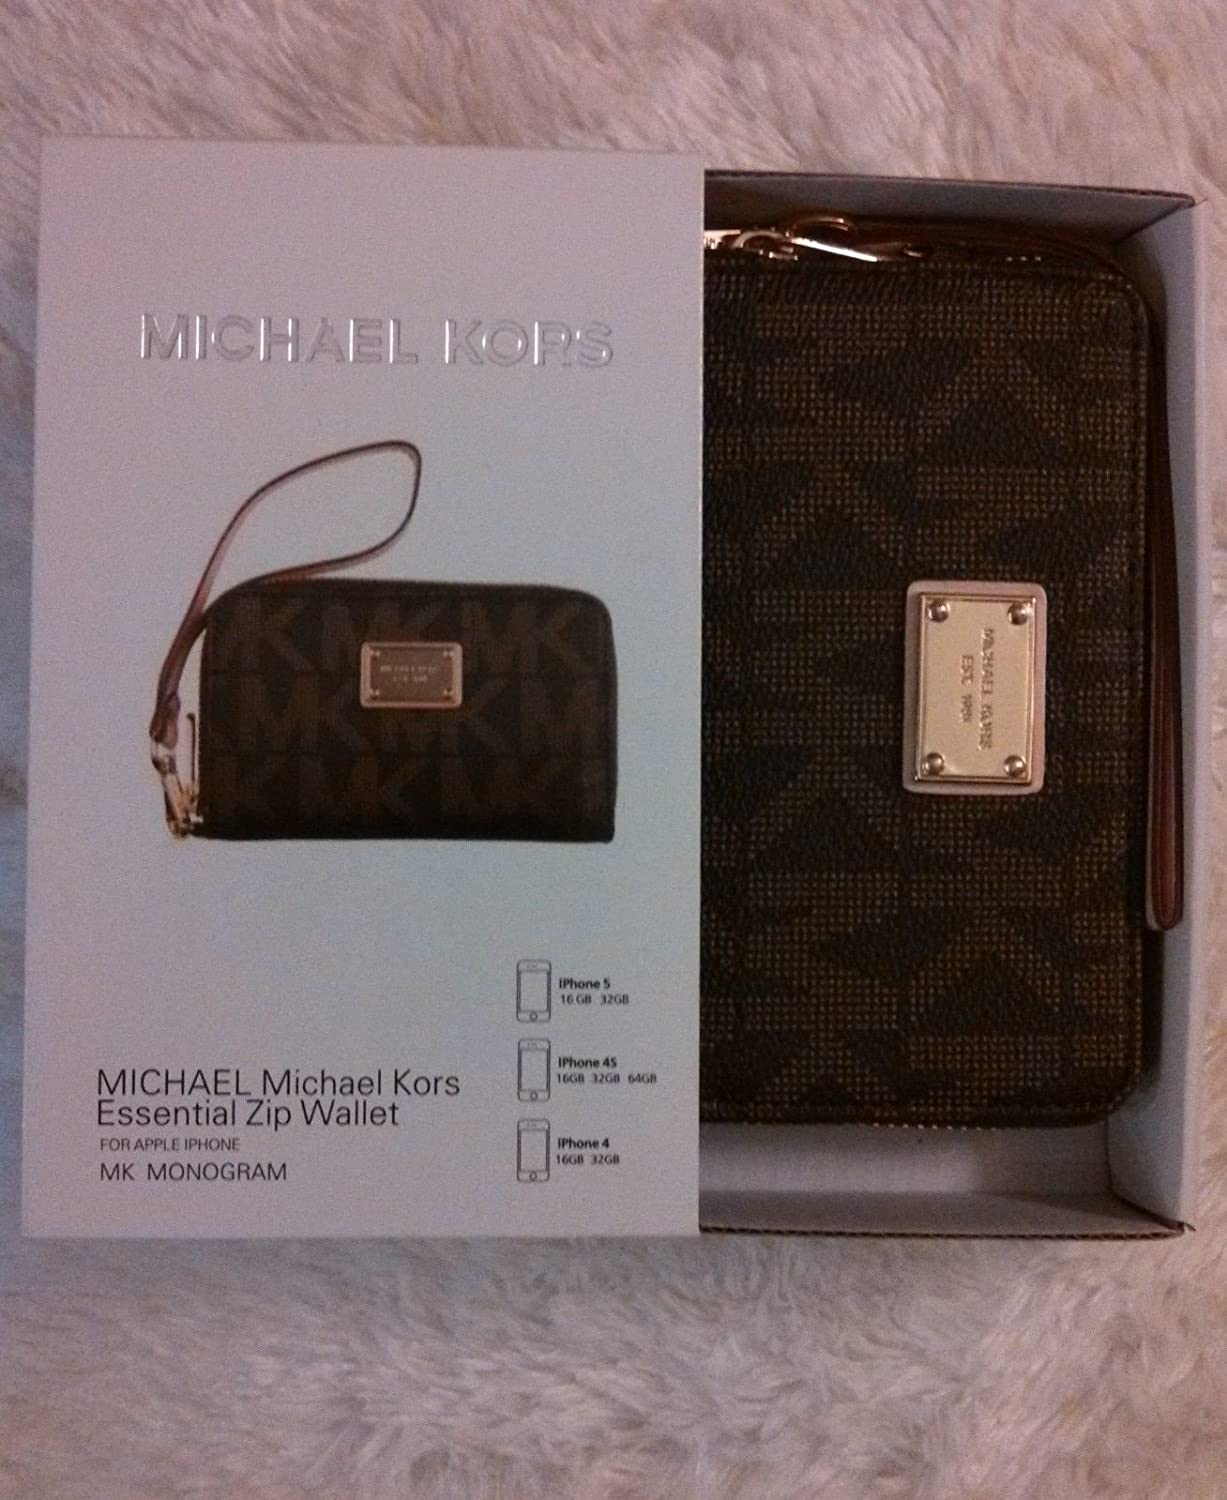 c529ca3f2c07 Amazon.com: Brown Michael Kors Wristlet Zip Wallet Case iPhone 4 4S 5 5S  5C: Clothing